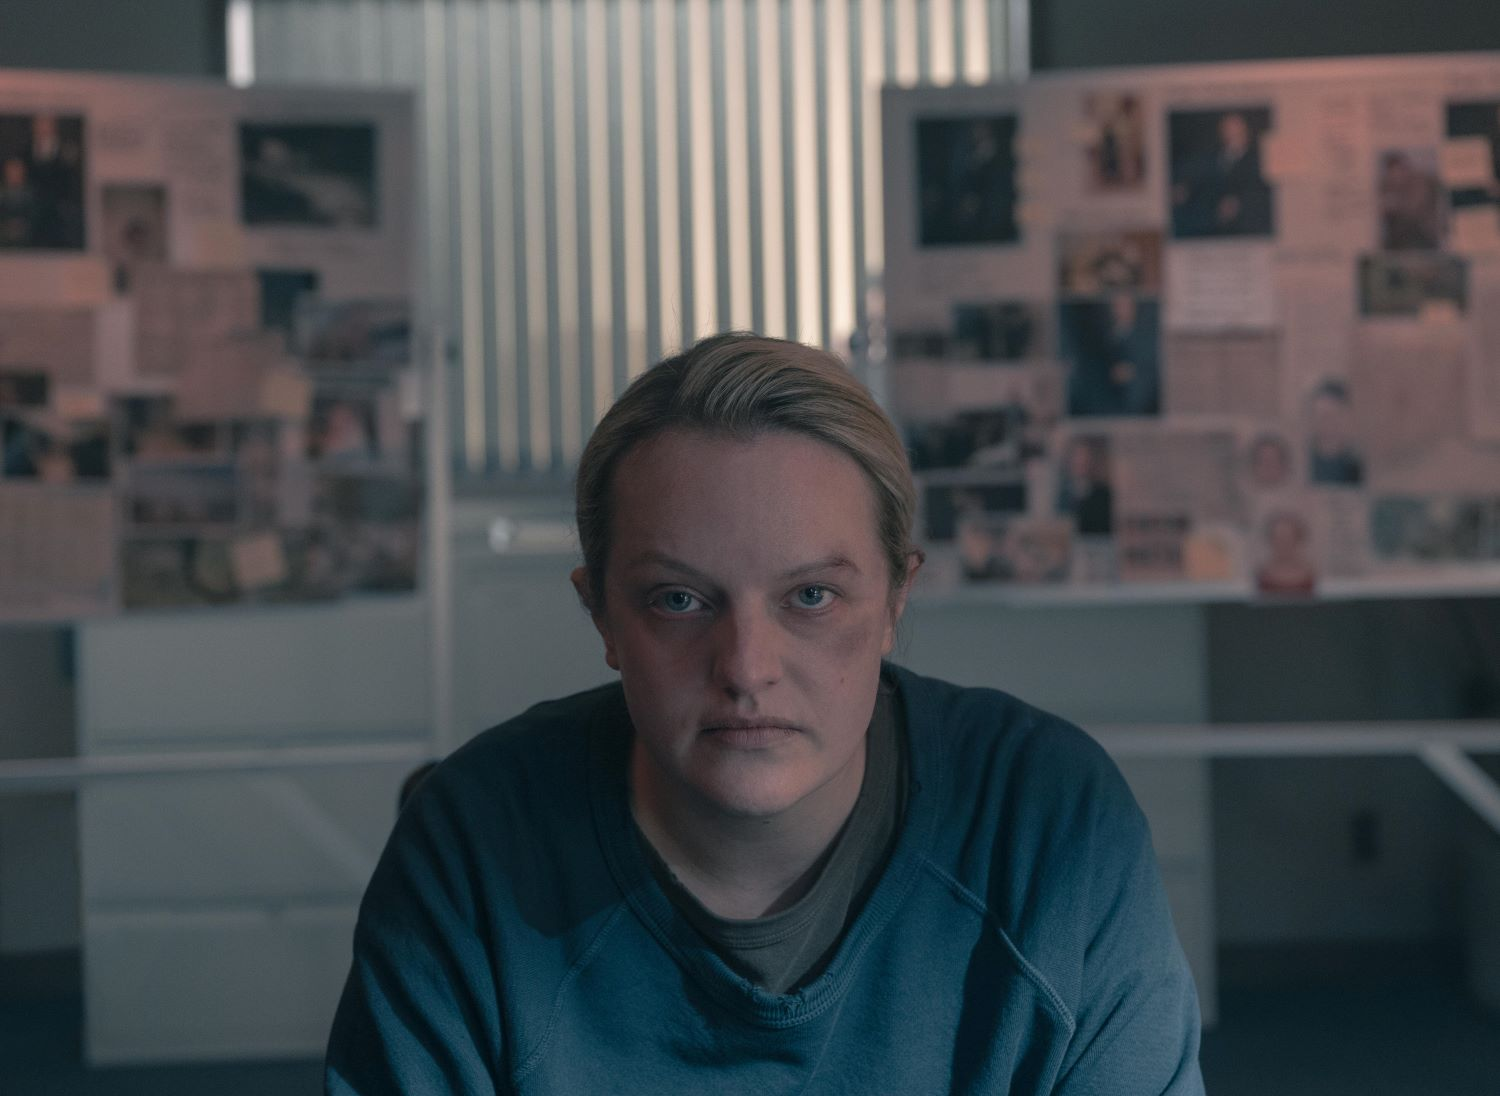 June Osborne wears a blue shirt and stares directly into the camera in 'The Handmaid's Tale'